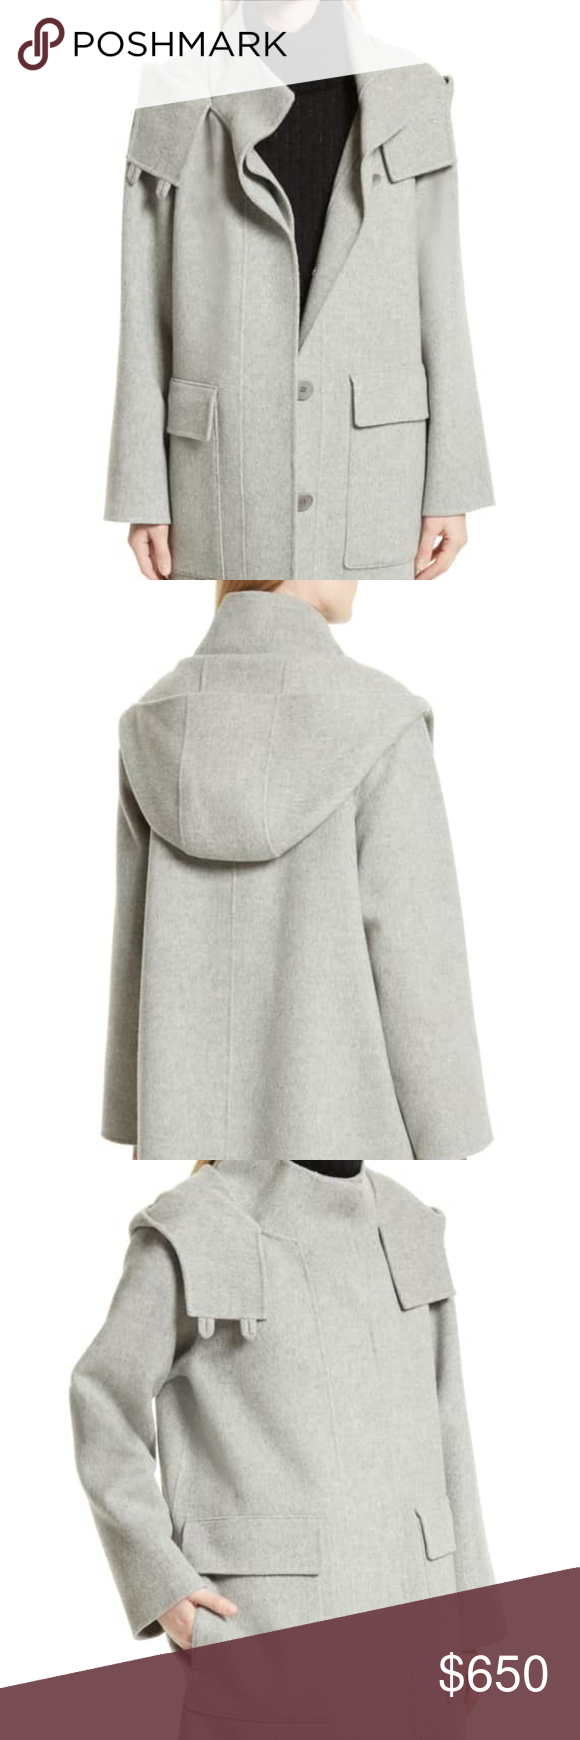 d832839f3ccb Theory Duffle Coat Exude elegance in this hooded wool-blend coat that is  kissed with